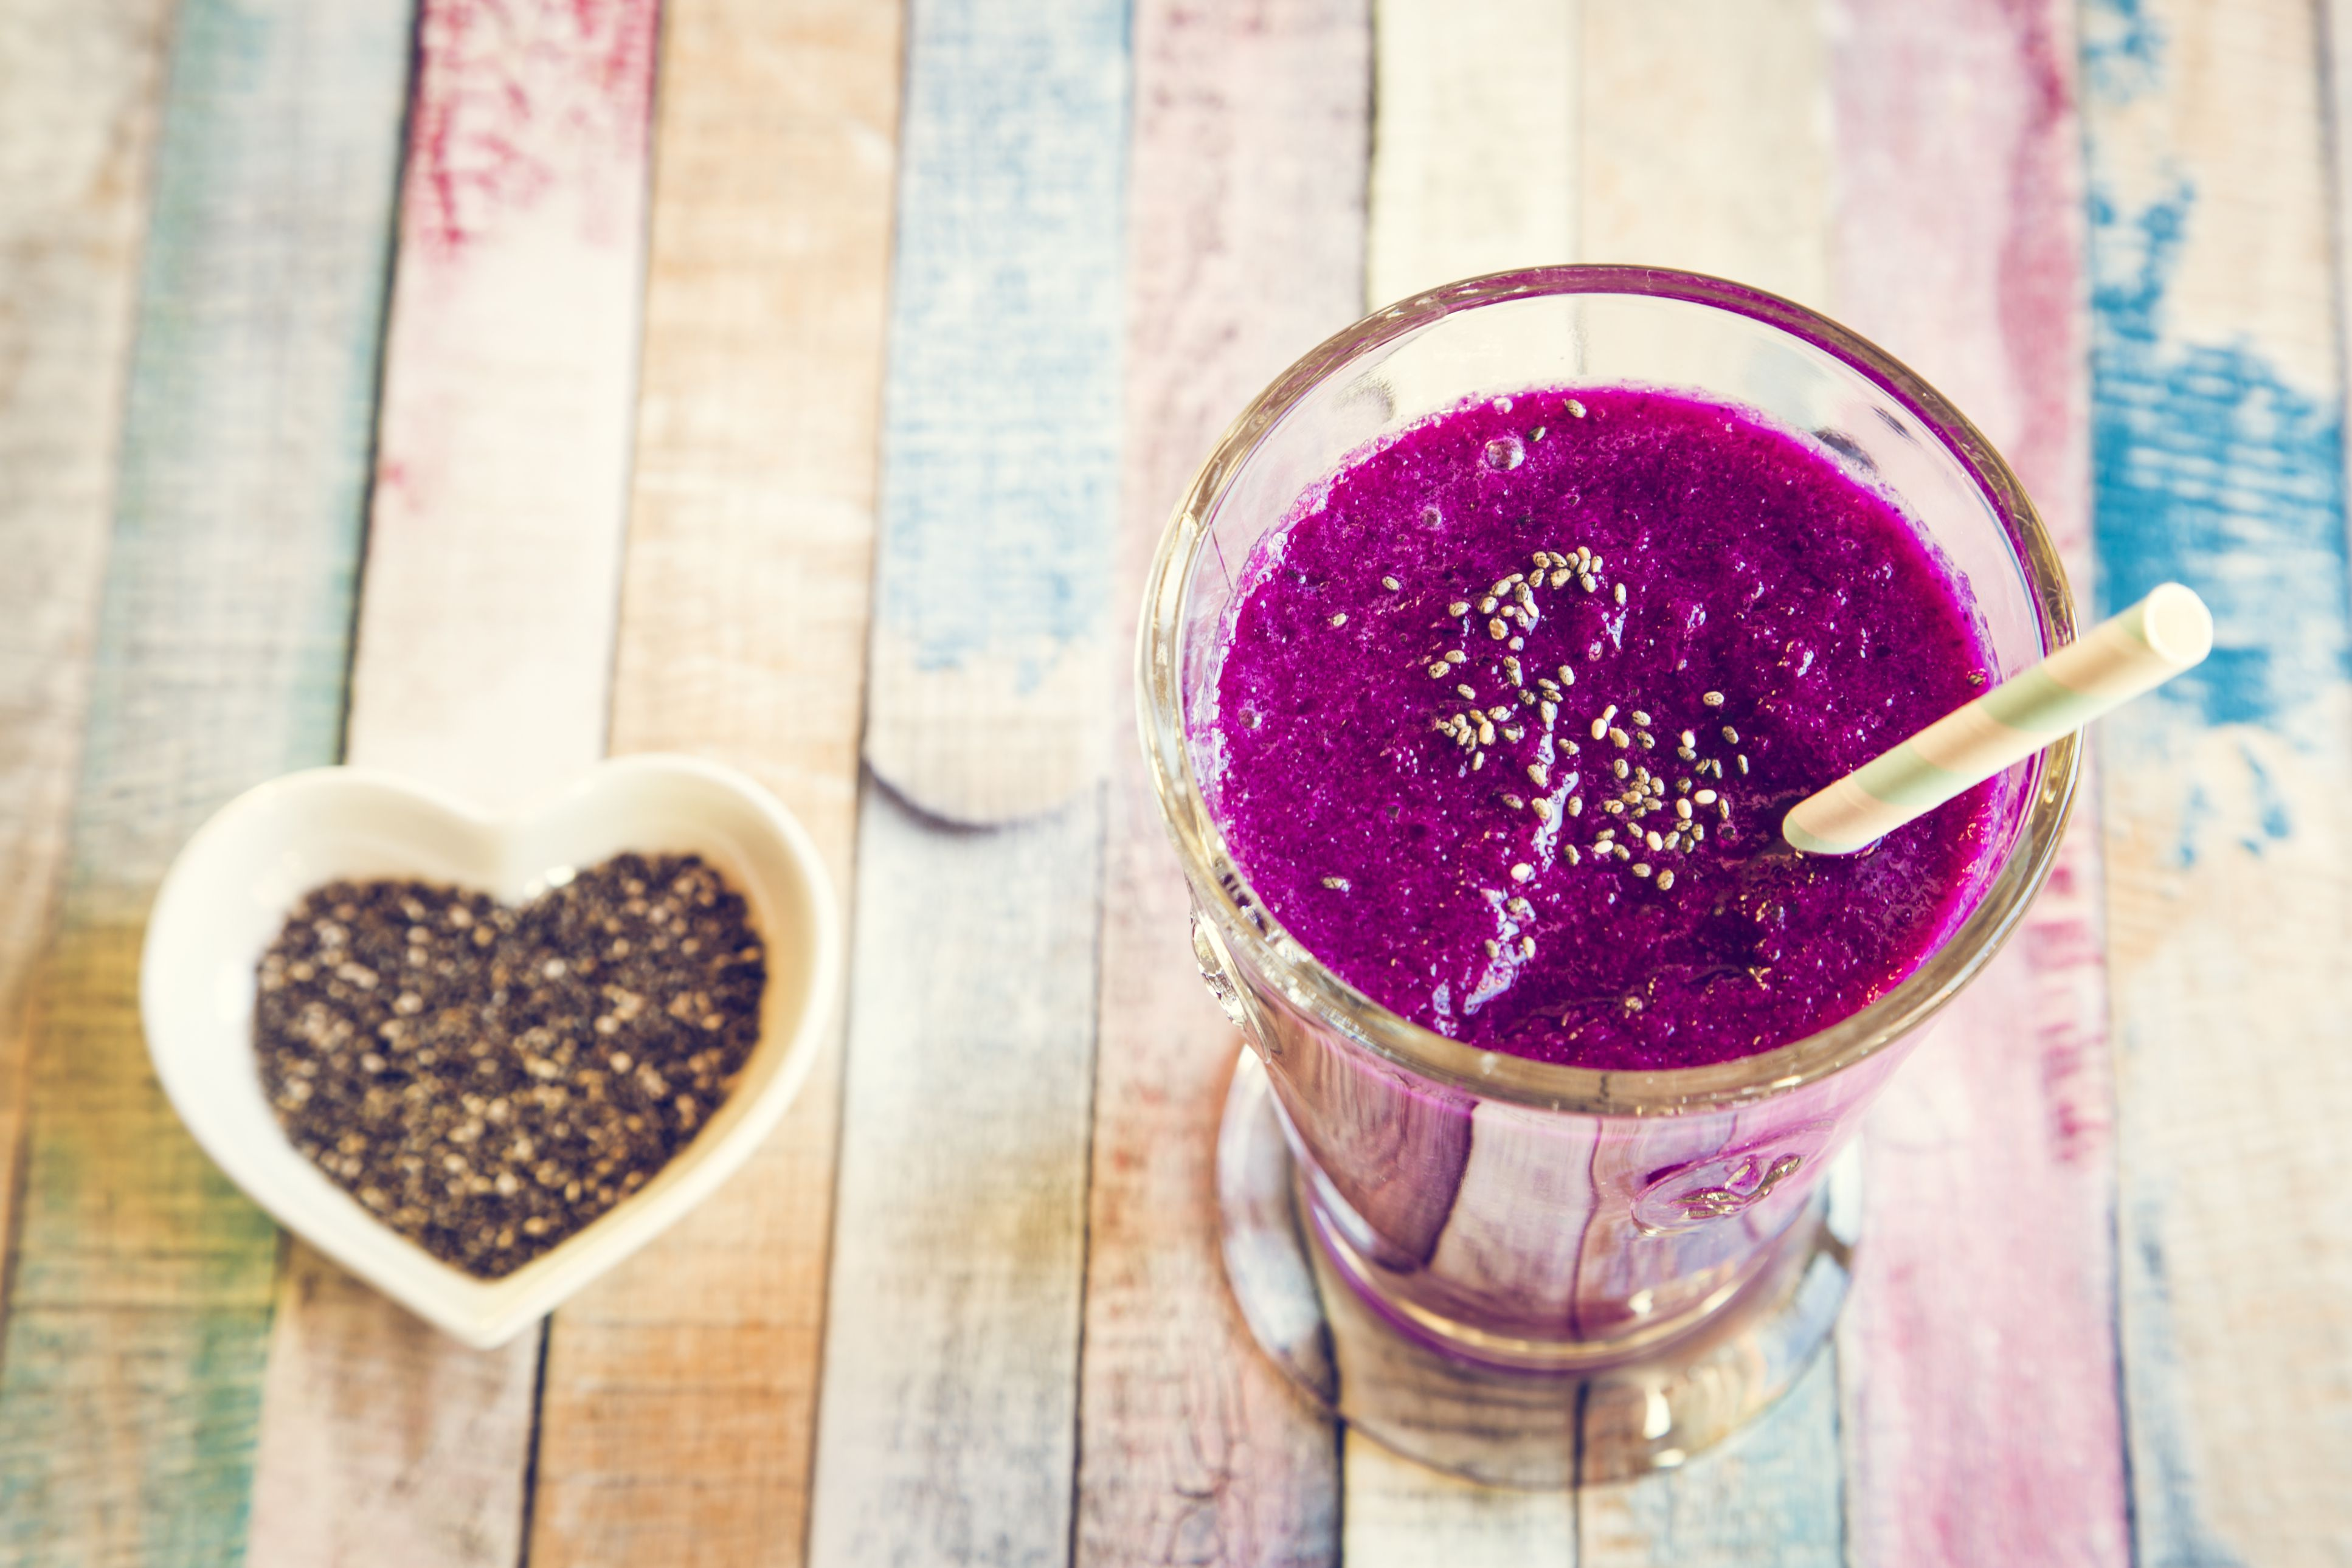 Blueberry Beet And Chia Smoothie Is Less Than 300 Calories